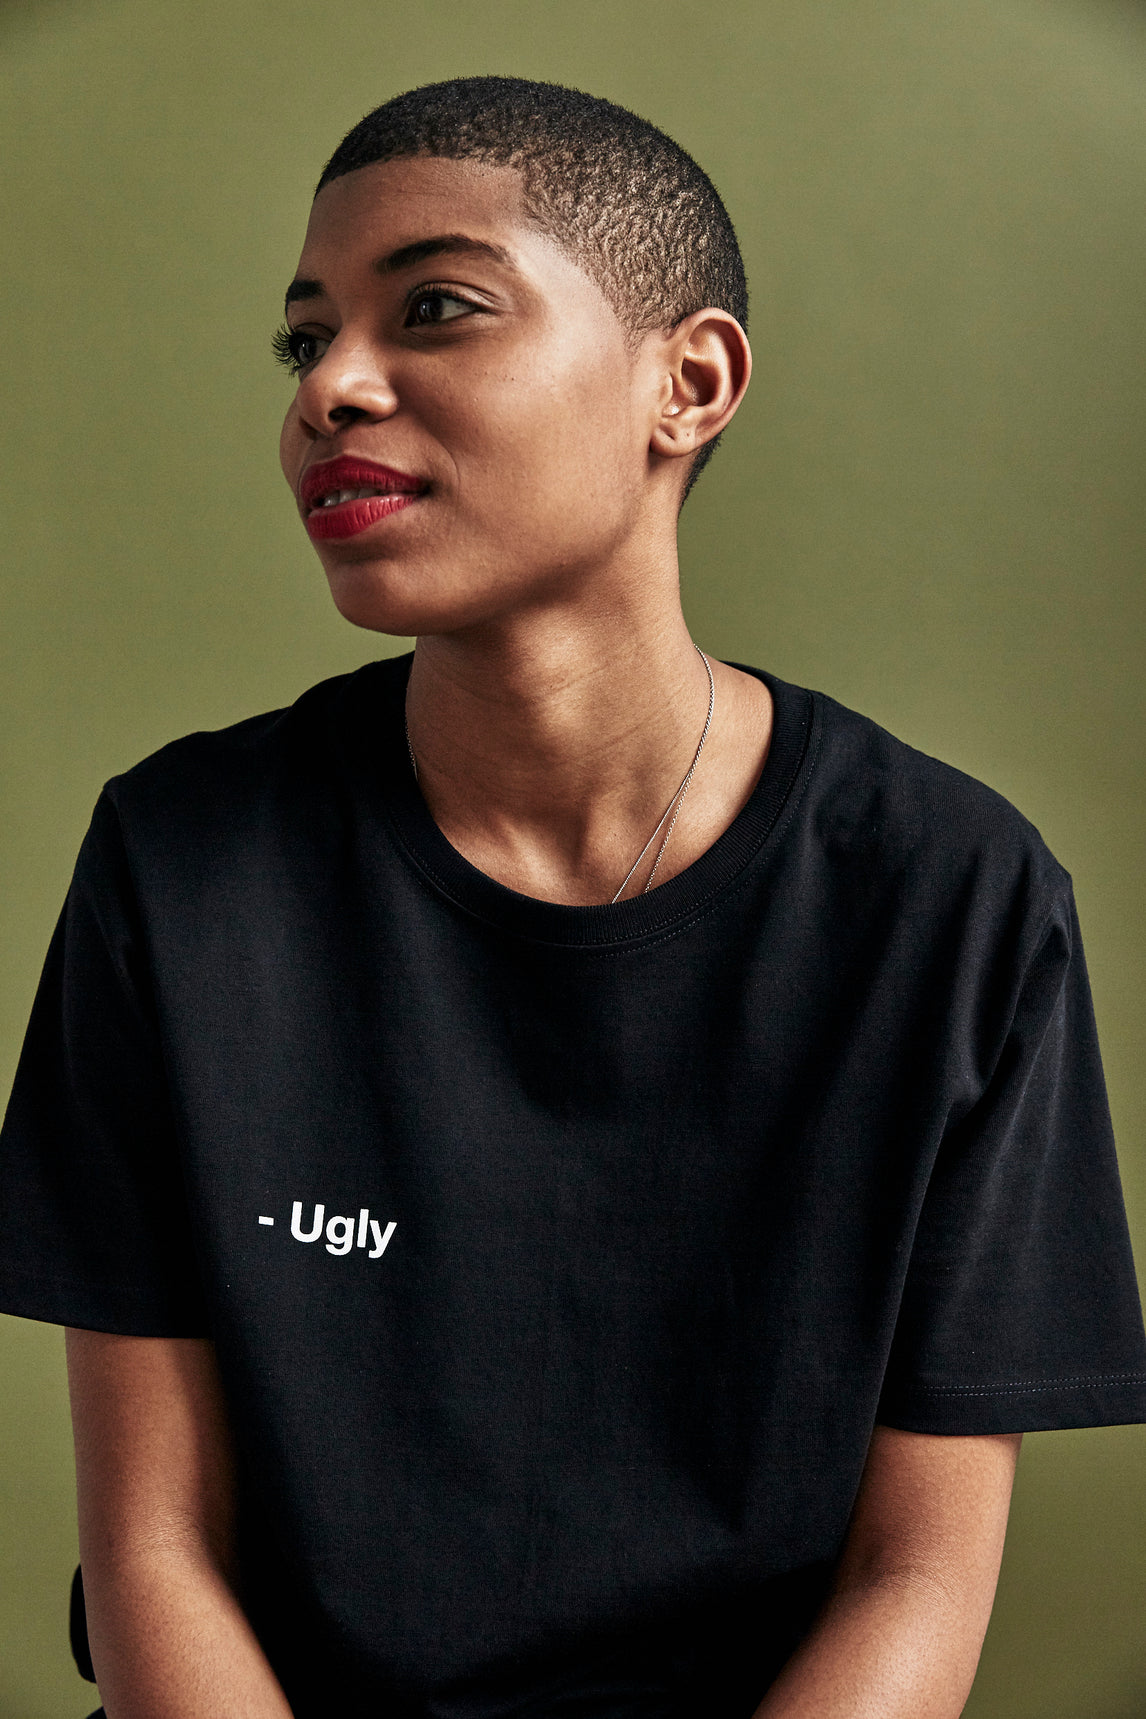 Black 'Ugly' T-Shirt